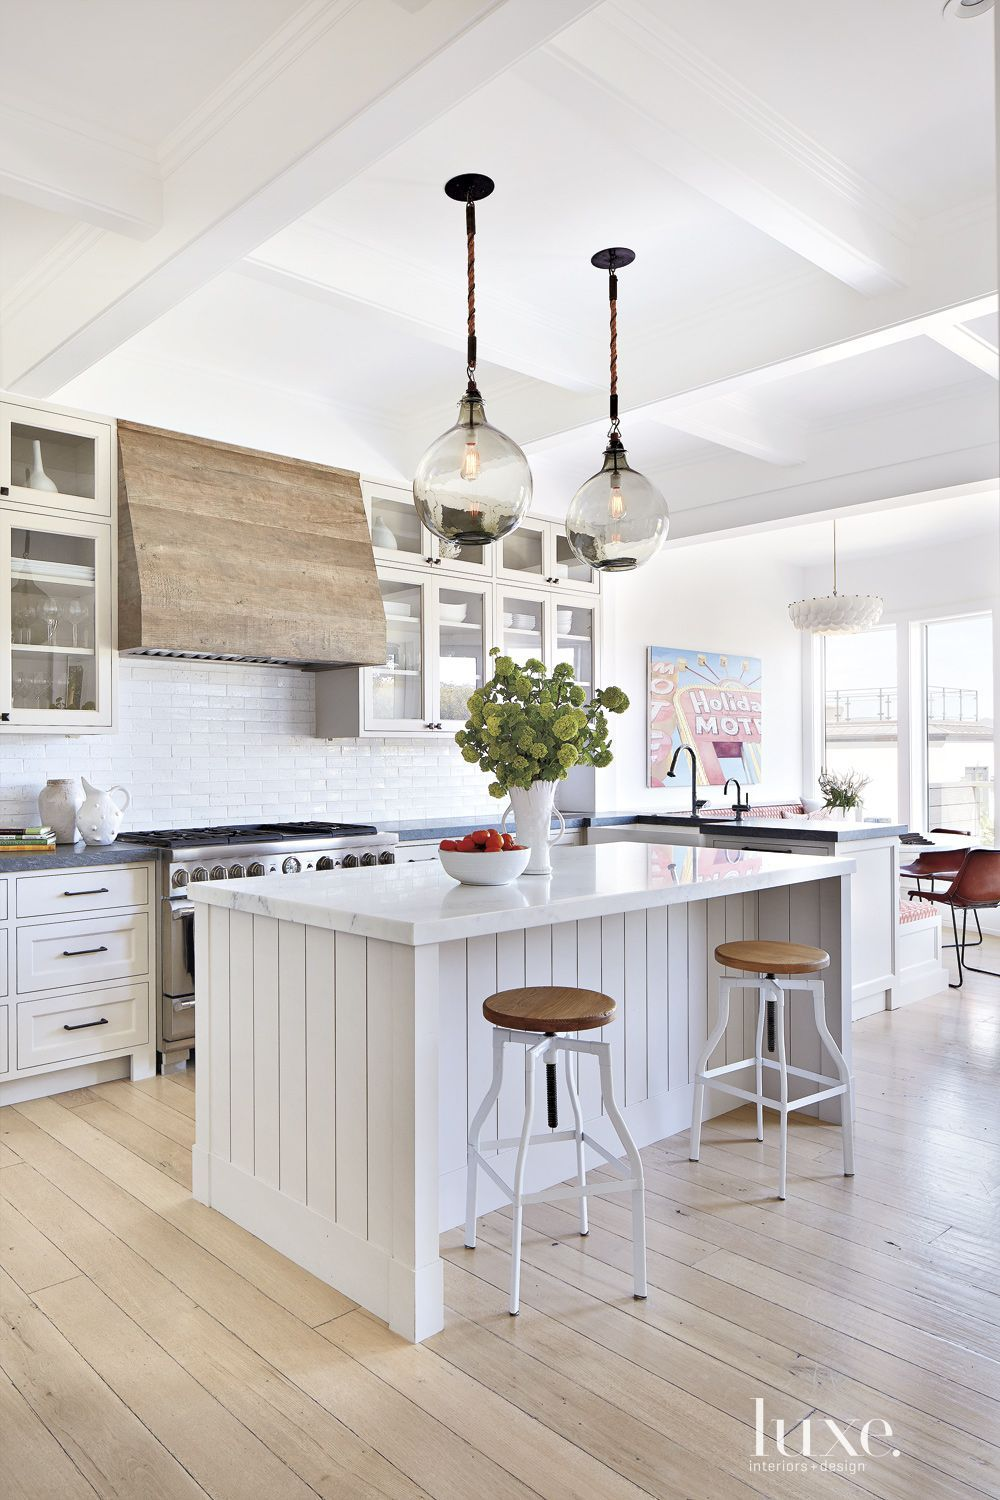 27 must see kitchen island designs luxedaily design insight from the editors of luxe on kitchen island ideas small layout id=97594